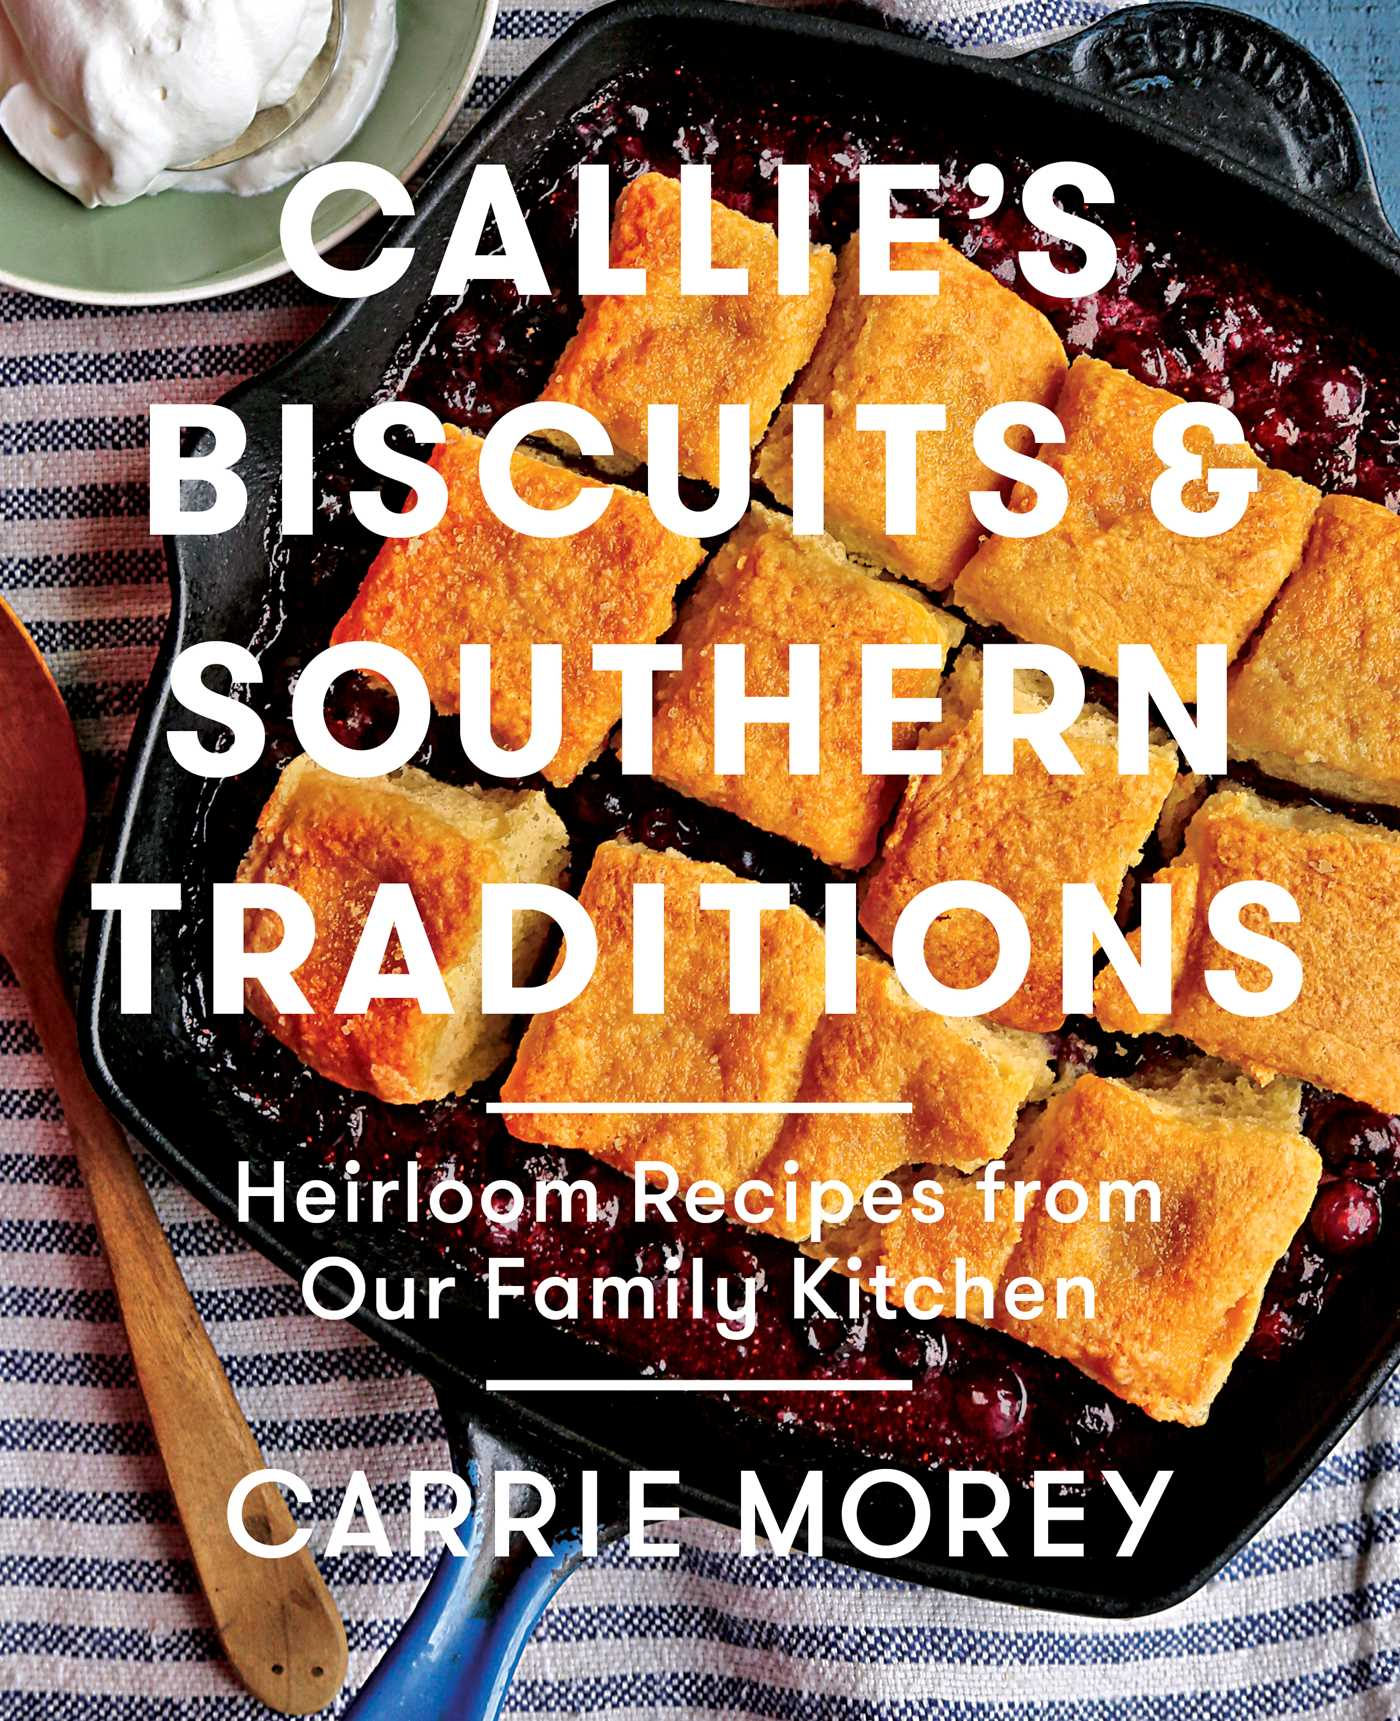 Callies biscuits and southern traditions 9781476713236 hr